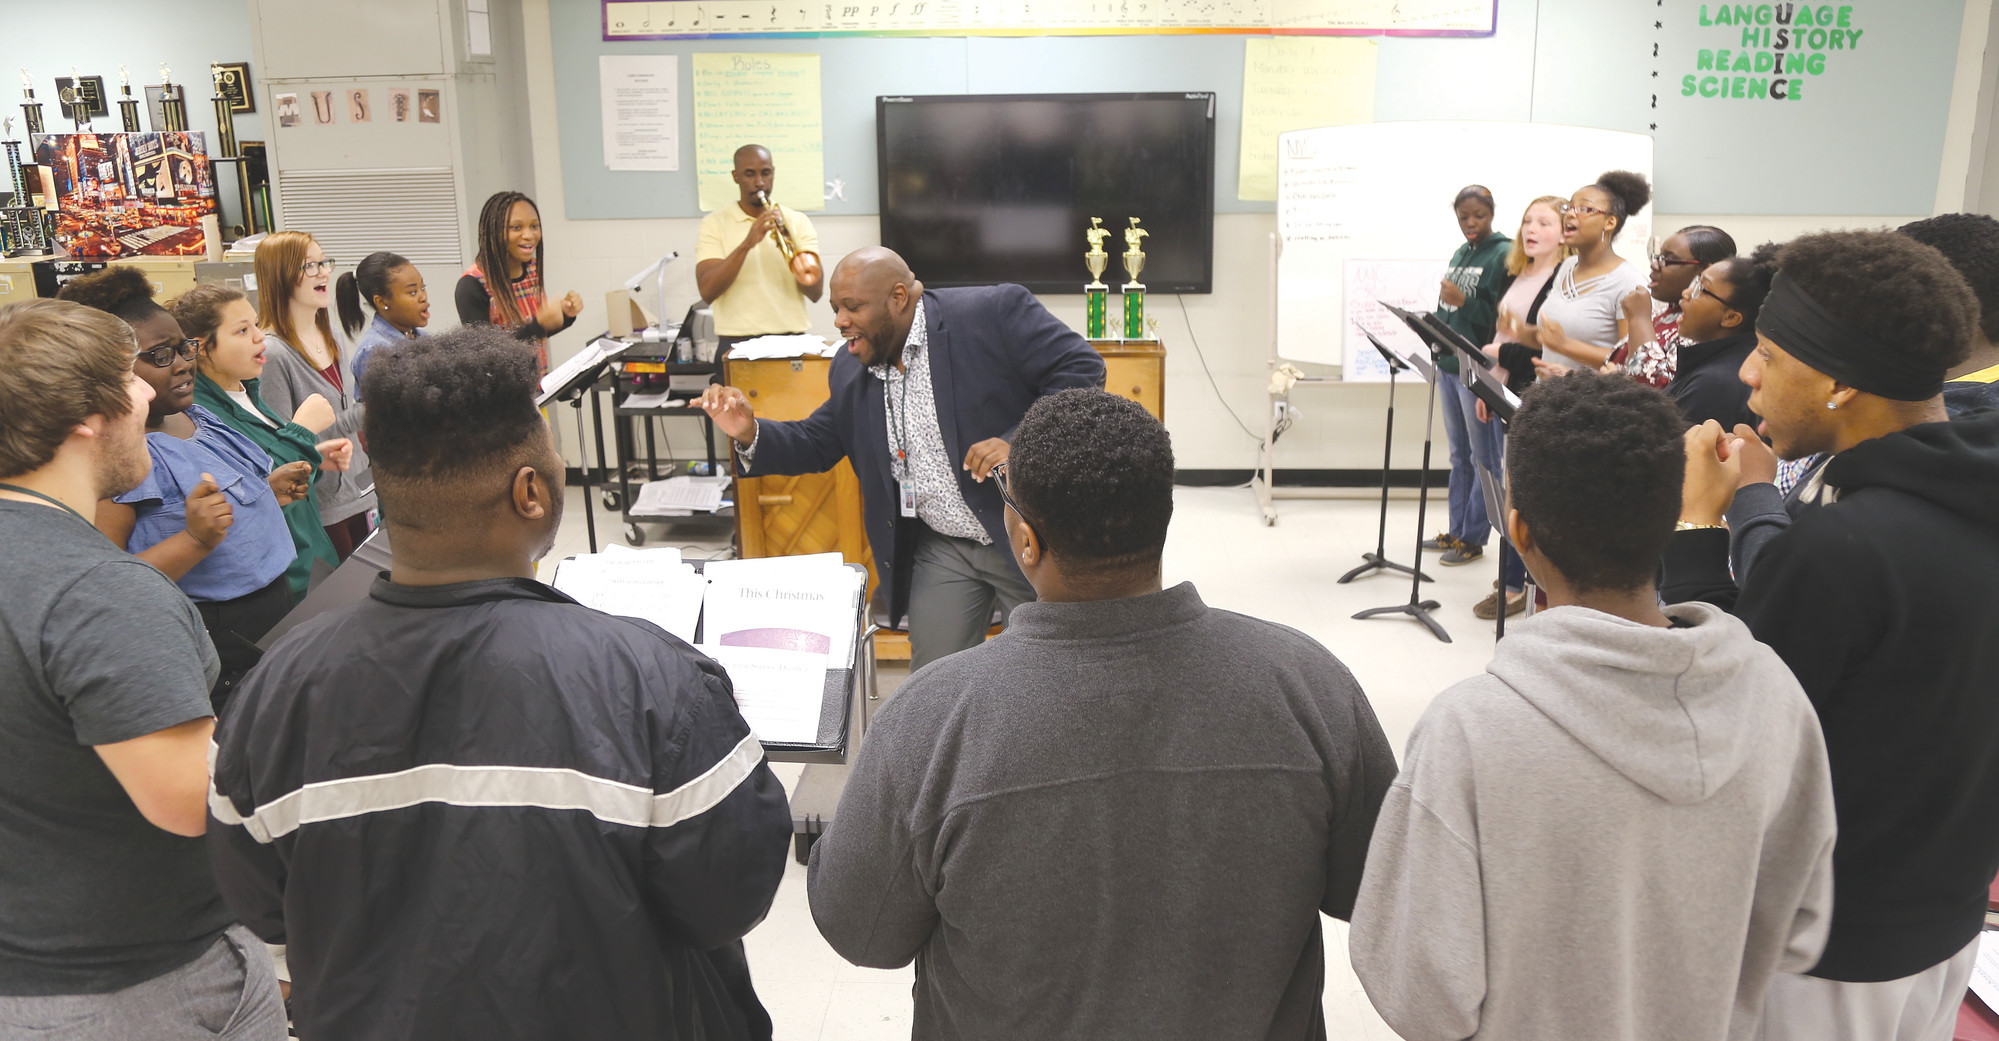 Under the direction of choral director Herbert Johnson, center, the Lakewood High School Vocal Jazz Ensemble practices last week at the school.